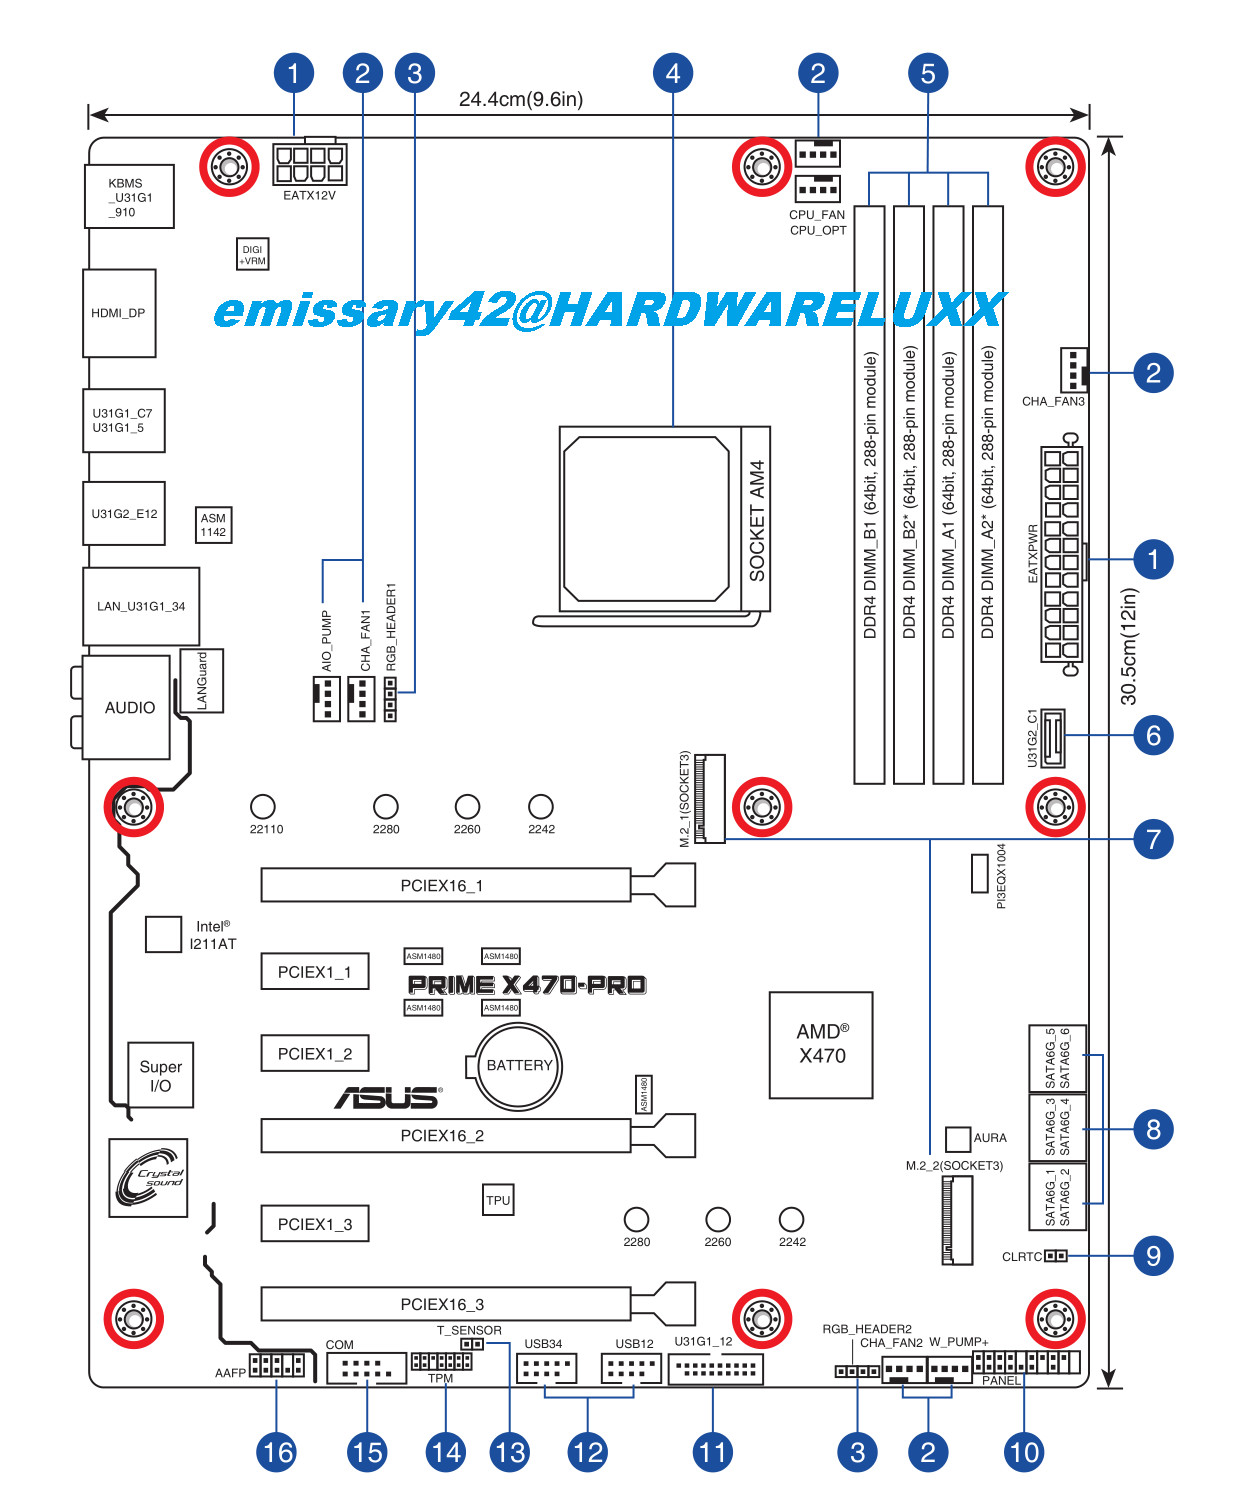 Asus Amd X470 Motherboard Layout Drawings And Specs Sheets